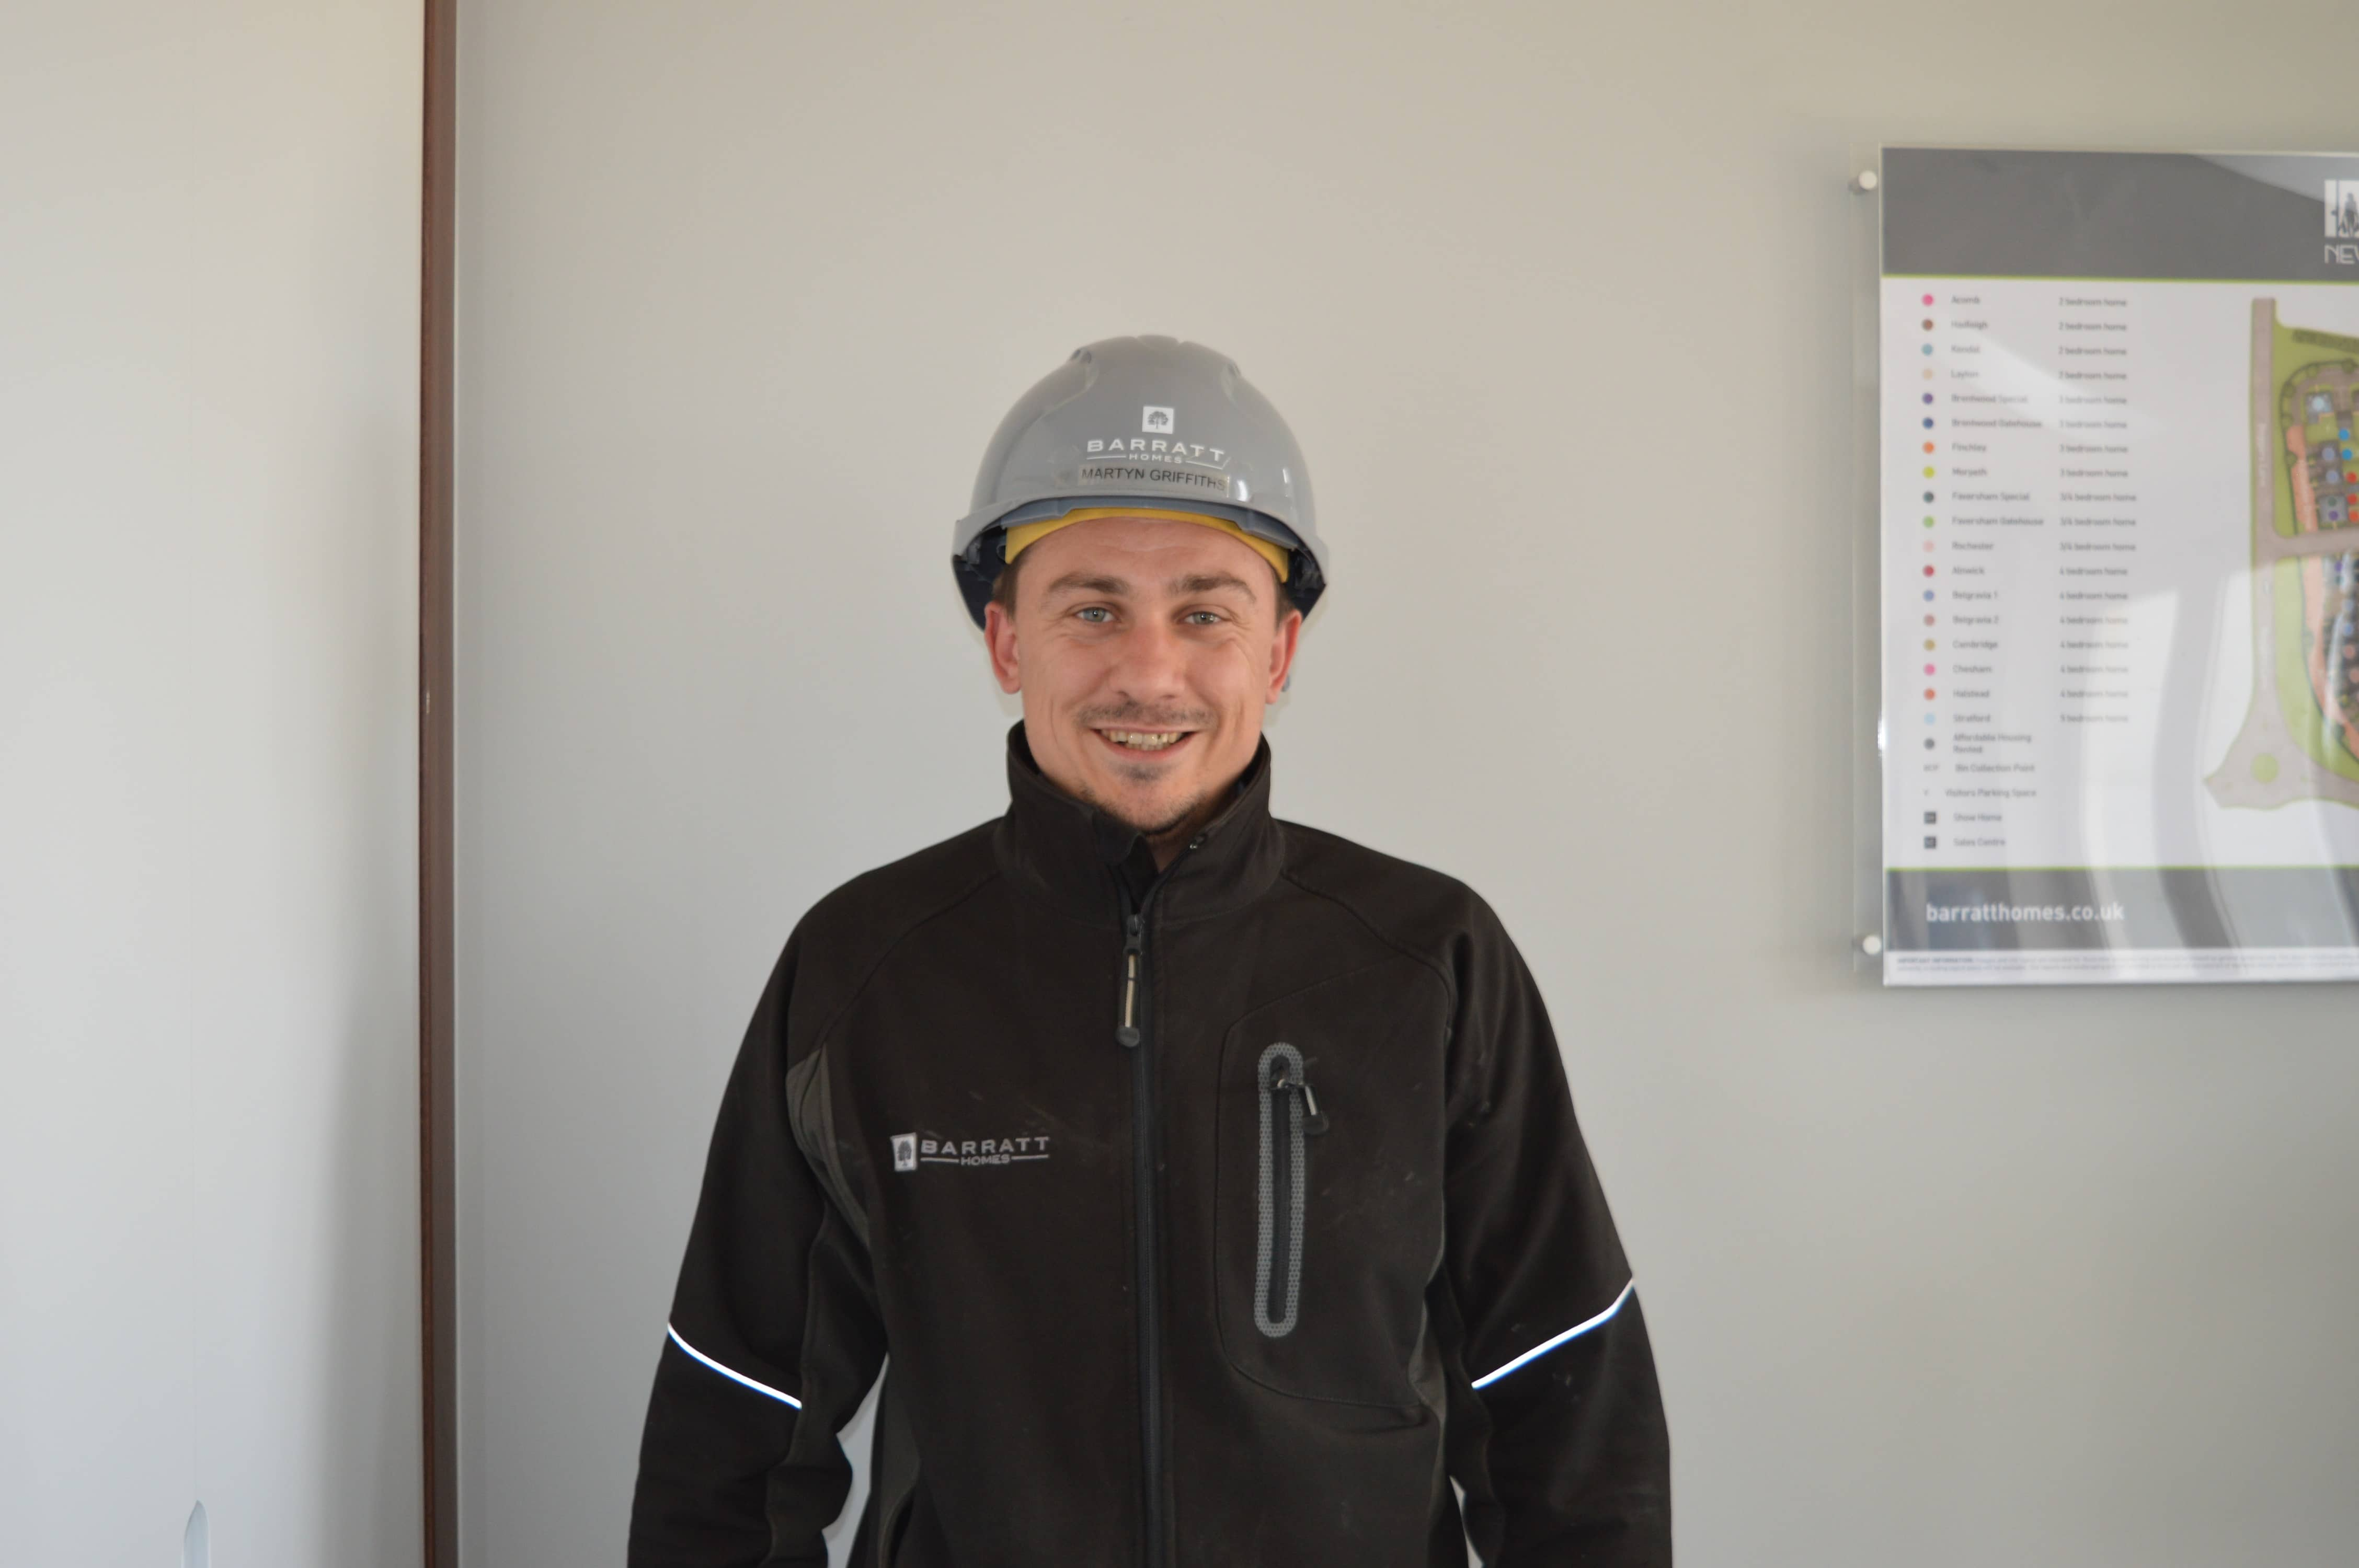 BARRATT HOMES SITE MANAGER IN HUGGLESCOTE RECOGNISED AS BEST IN THE COUNTRY FOR QUALITY